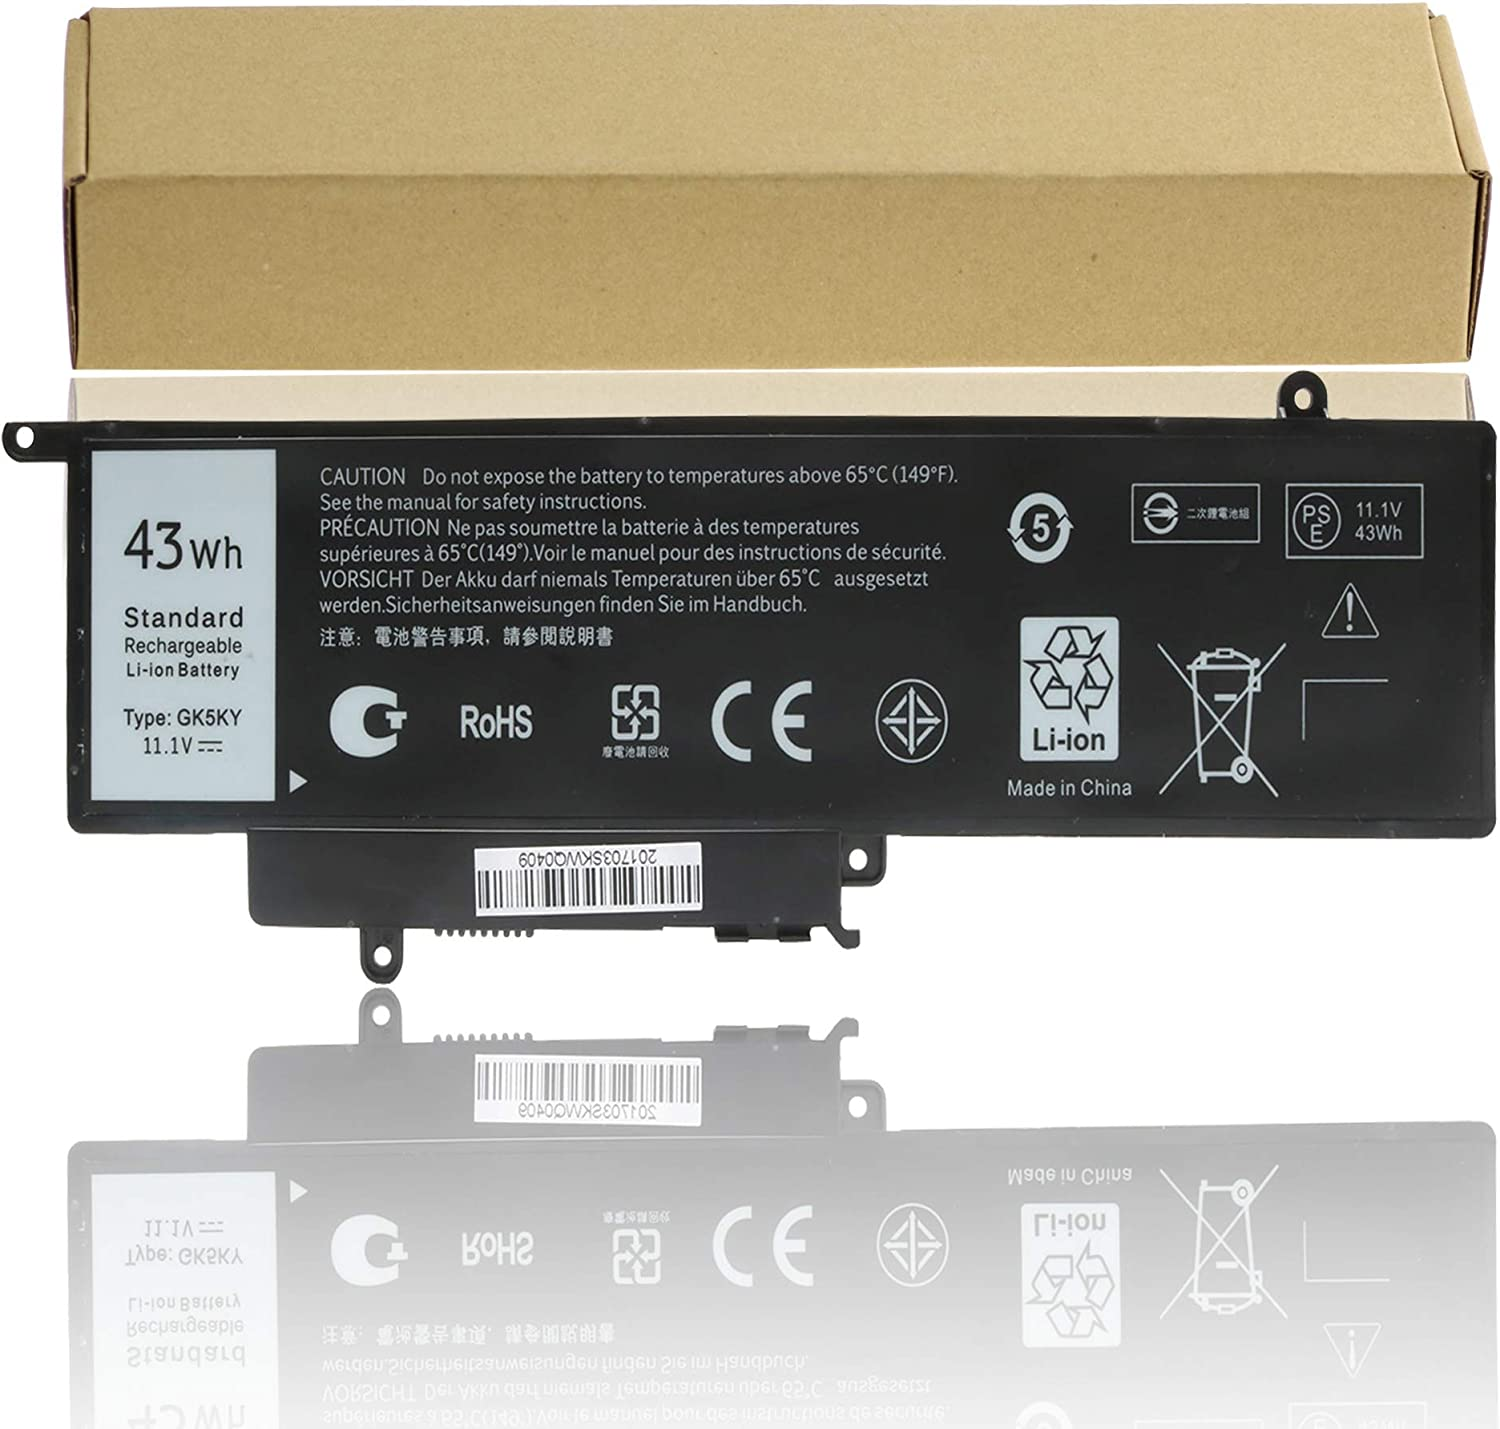 GK5KY New Laptop Battery for Dell Inspiron 11 3000 3147 3152,13 7352 7353 7348 7359, Compatible P/N 04K8YH 92NCT 092NCT 4K8YH P20T Notebook PC